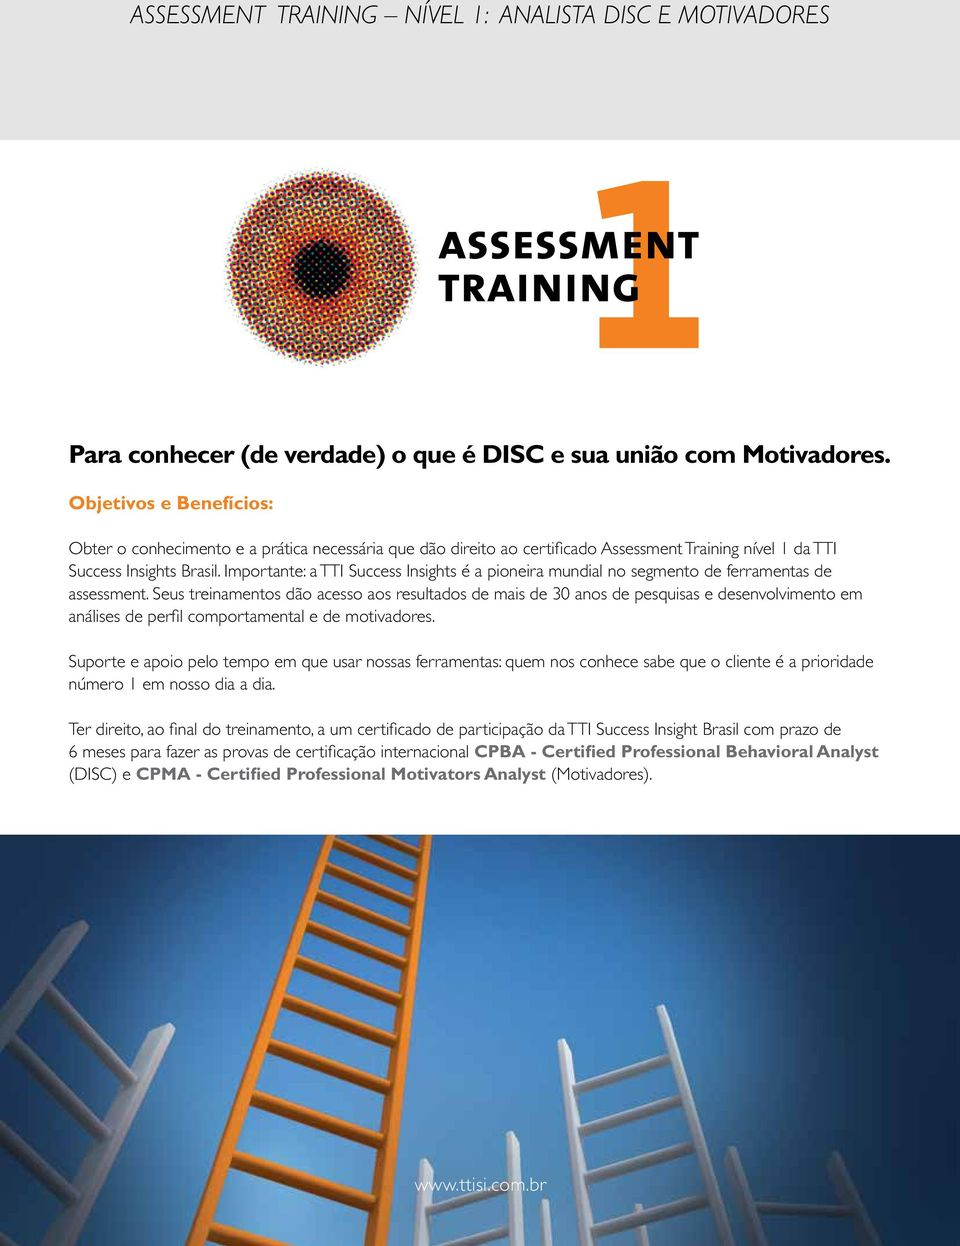 Importante: a TTI Success Insights é a pioneira mundial no segmento de ferramentas de assessment.